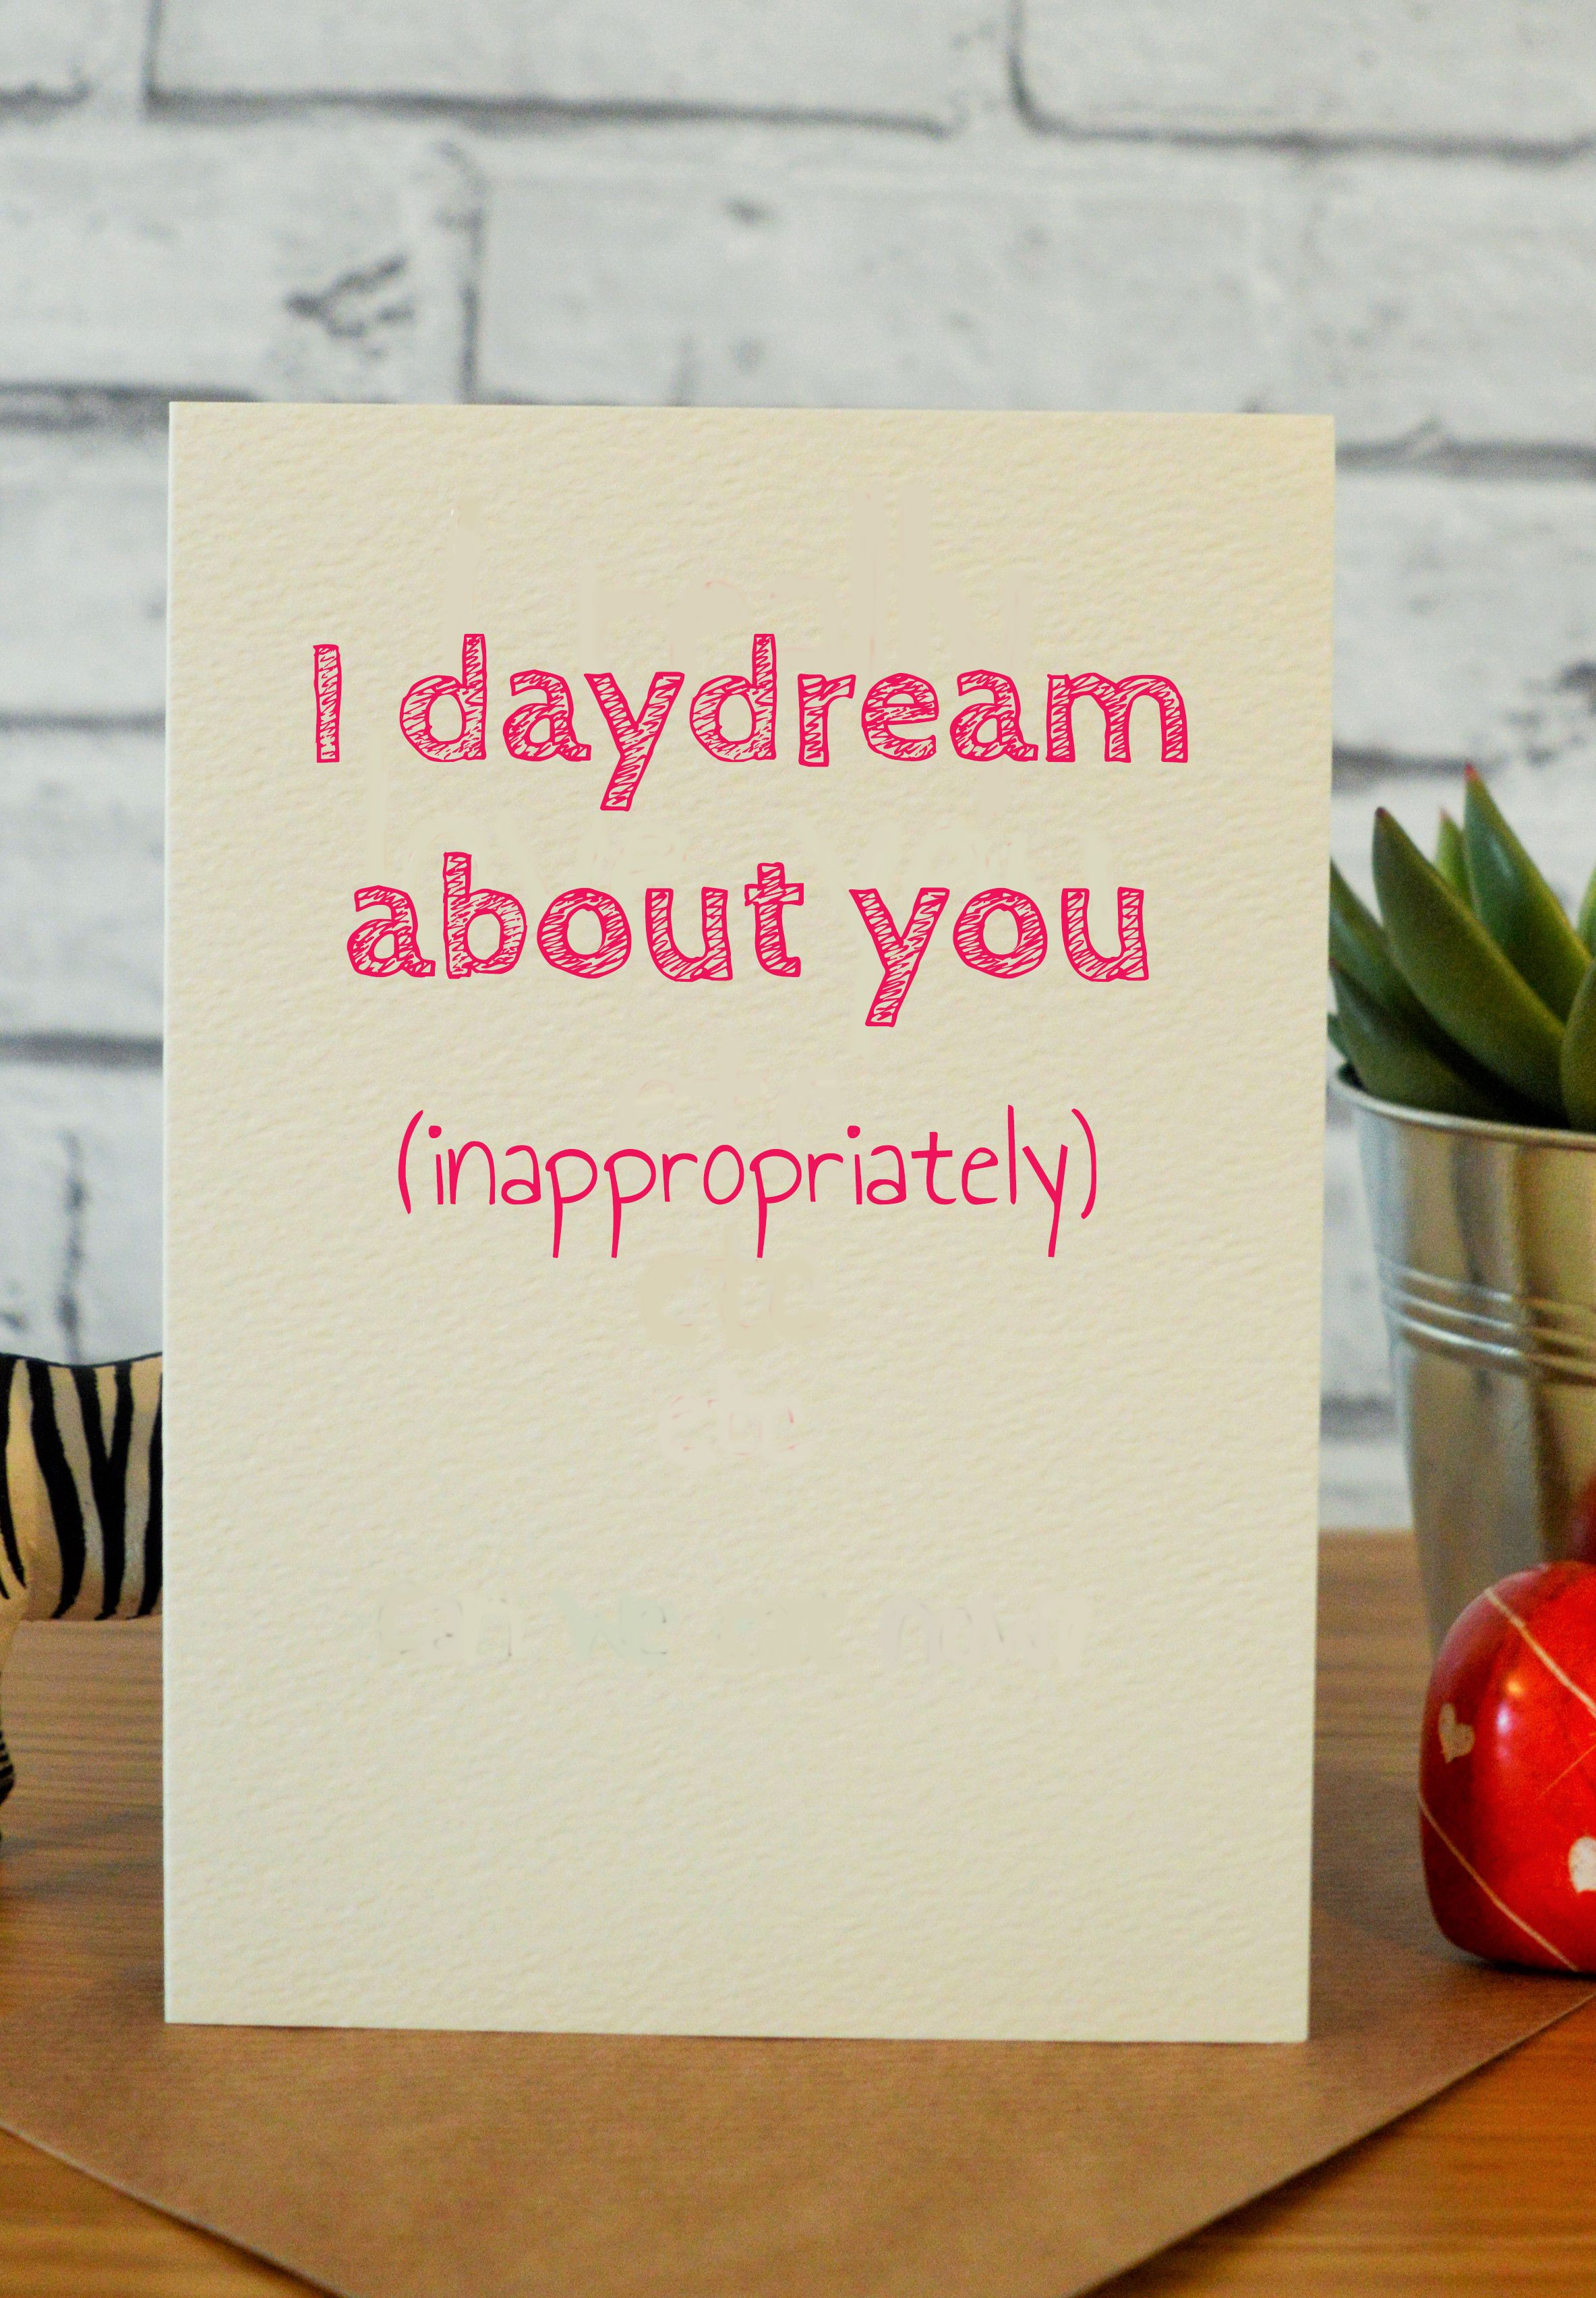 Naughty ideas for valentines day